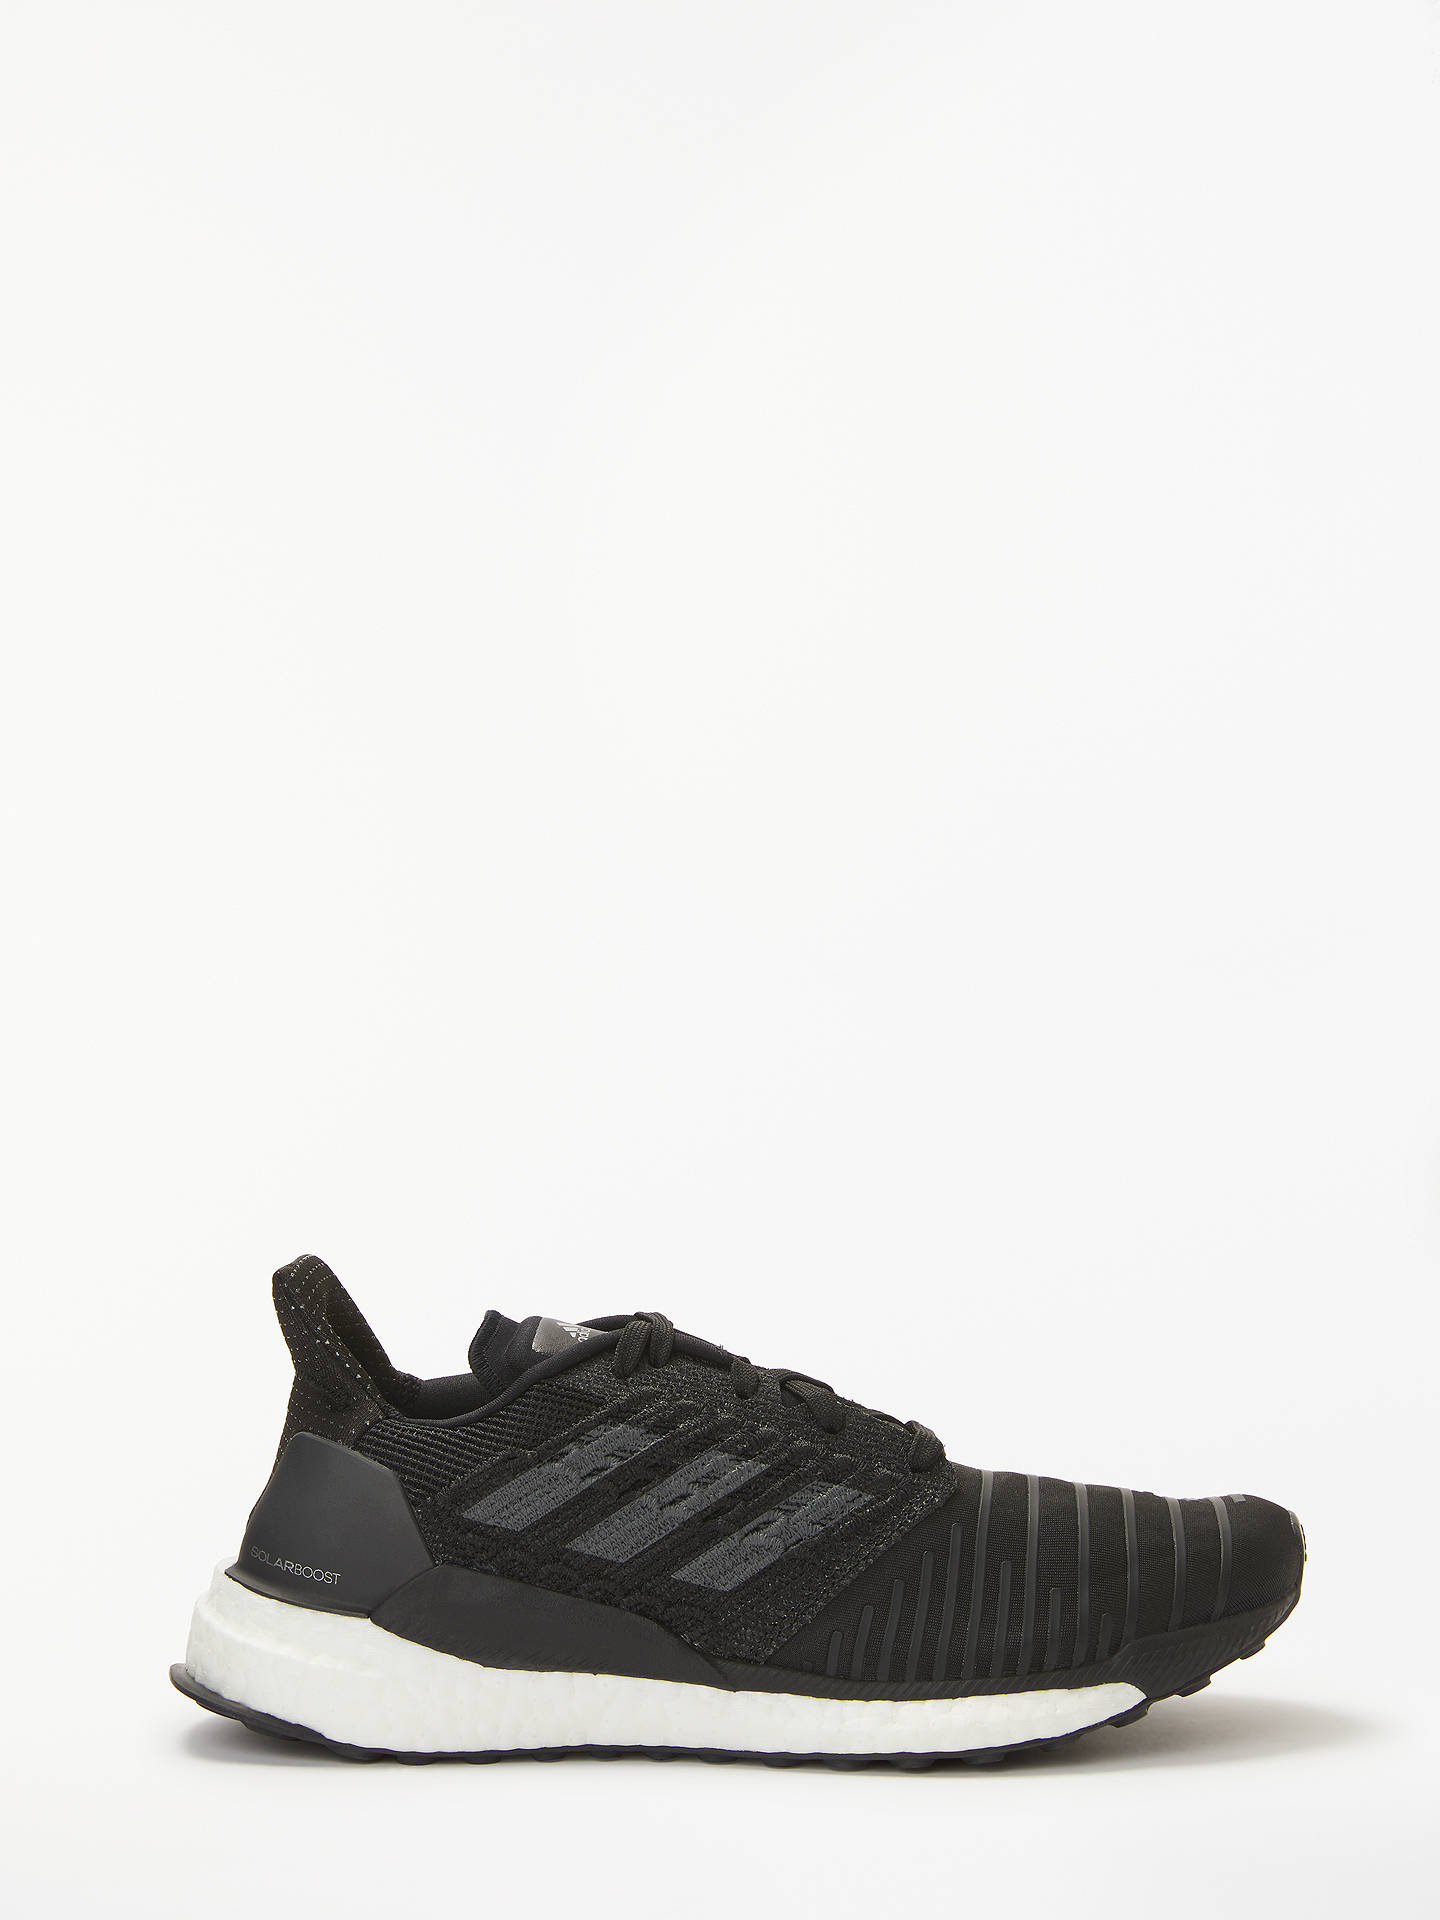 7f41f41f2 adidas Solar Boost Women s Running Shoes at John Lewis   Partners